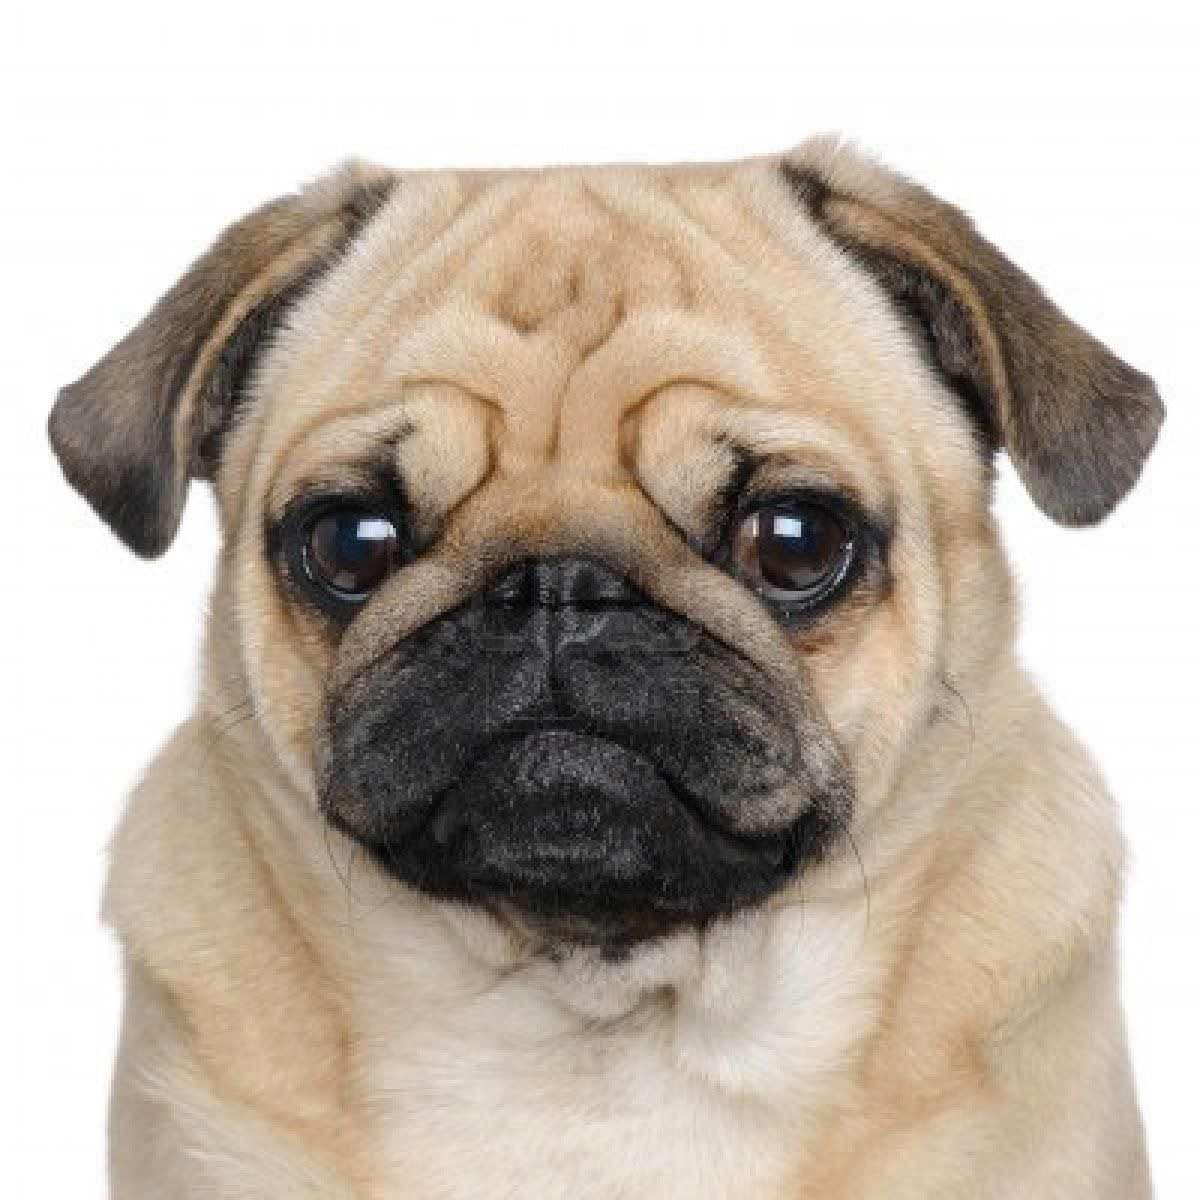 Pug Dog Breed Pug Dog Dog Breeds Pugs